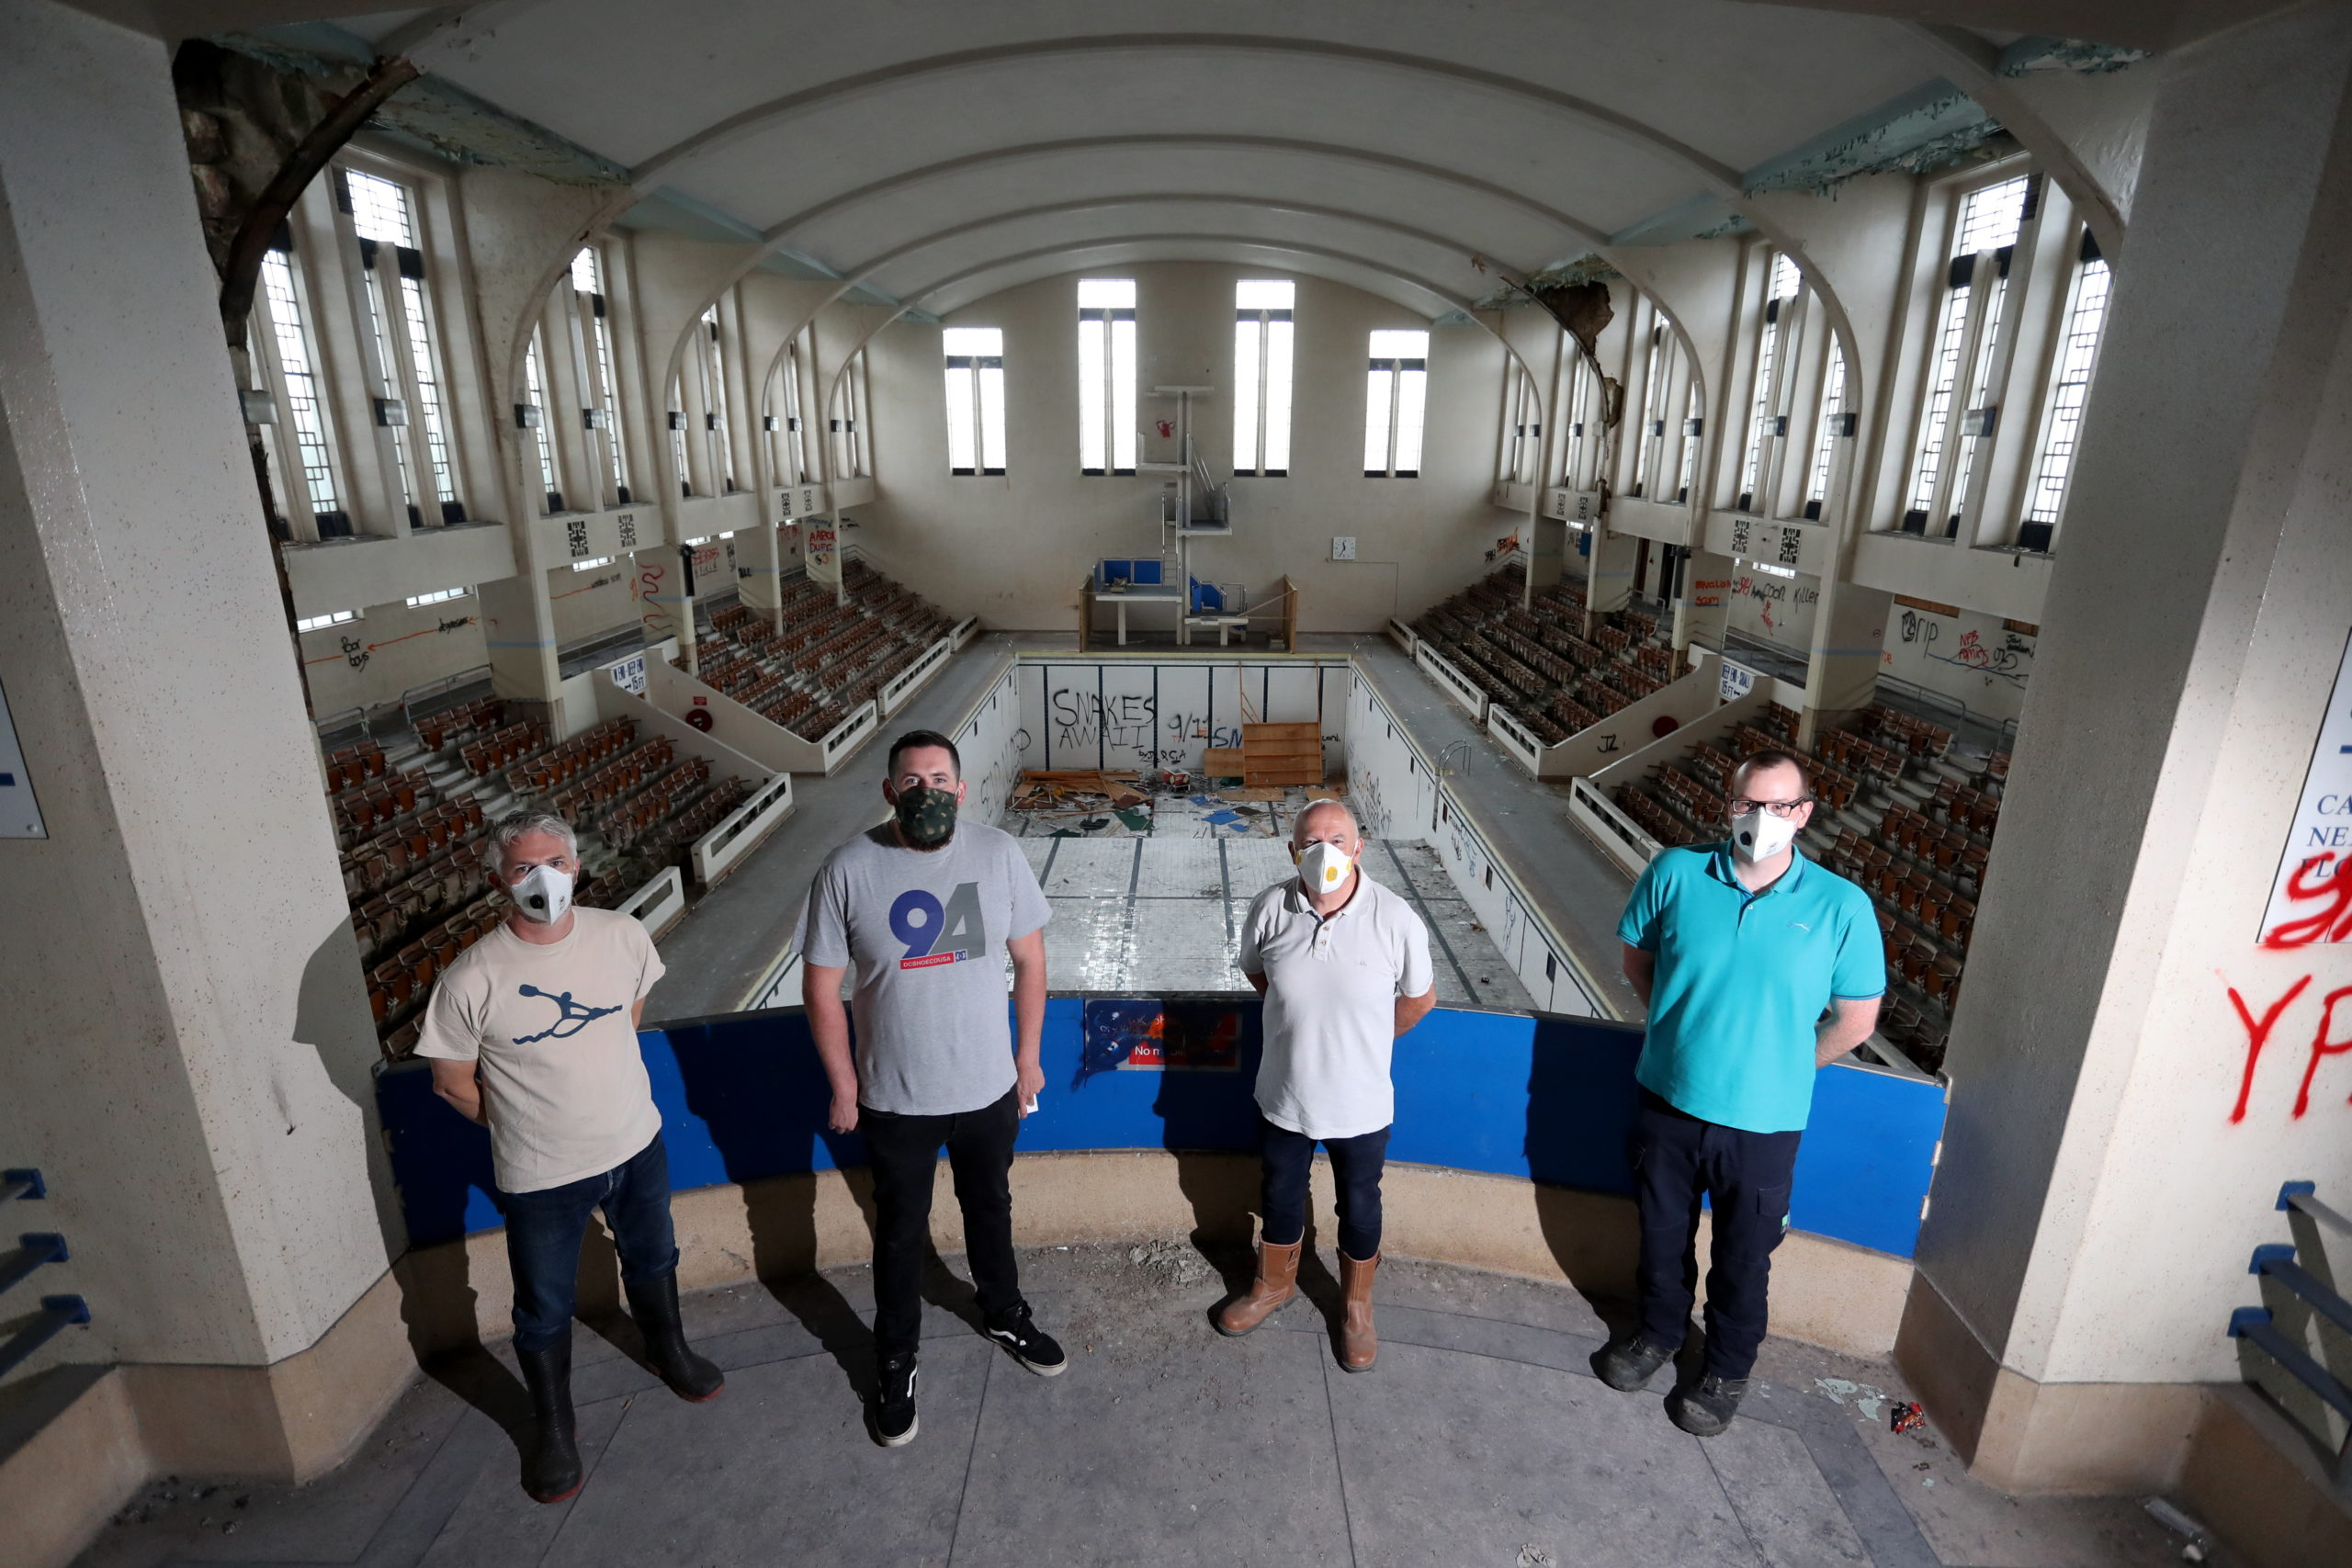 From left, Bruce Strachan, Steven Cooper, Ian Mitchell and Craig McAndie of Save Bon Accord Baths. Picture by Scott Baxter